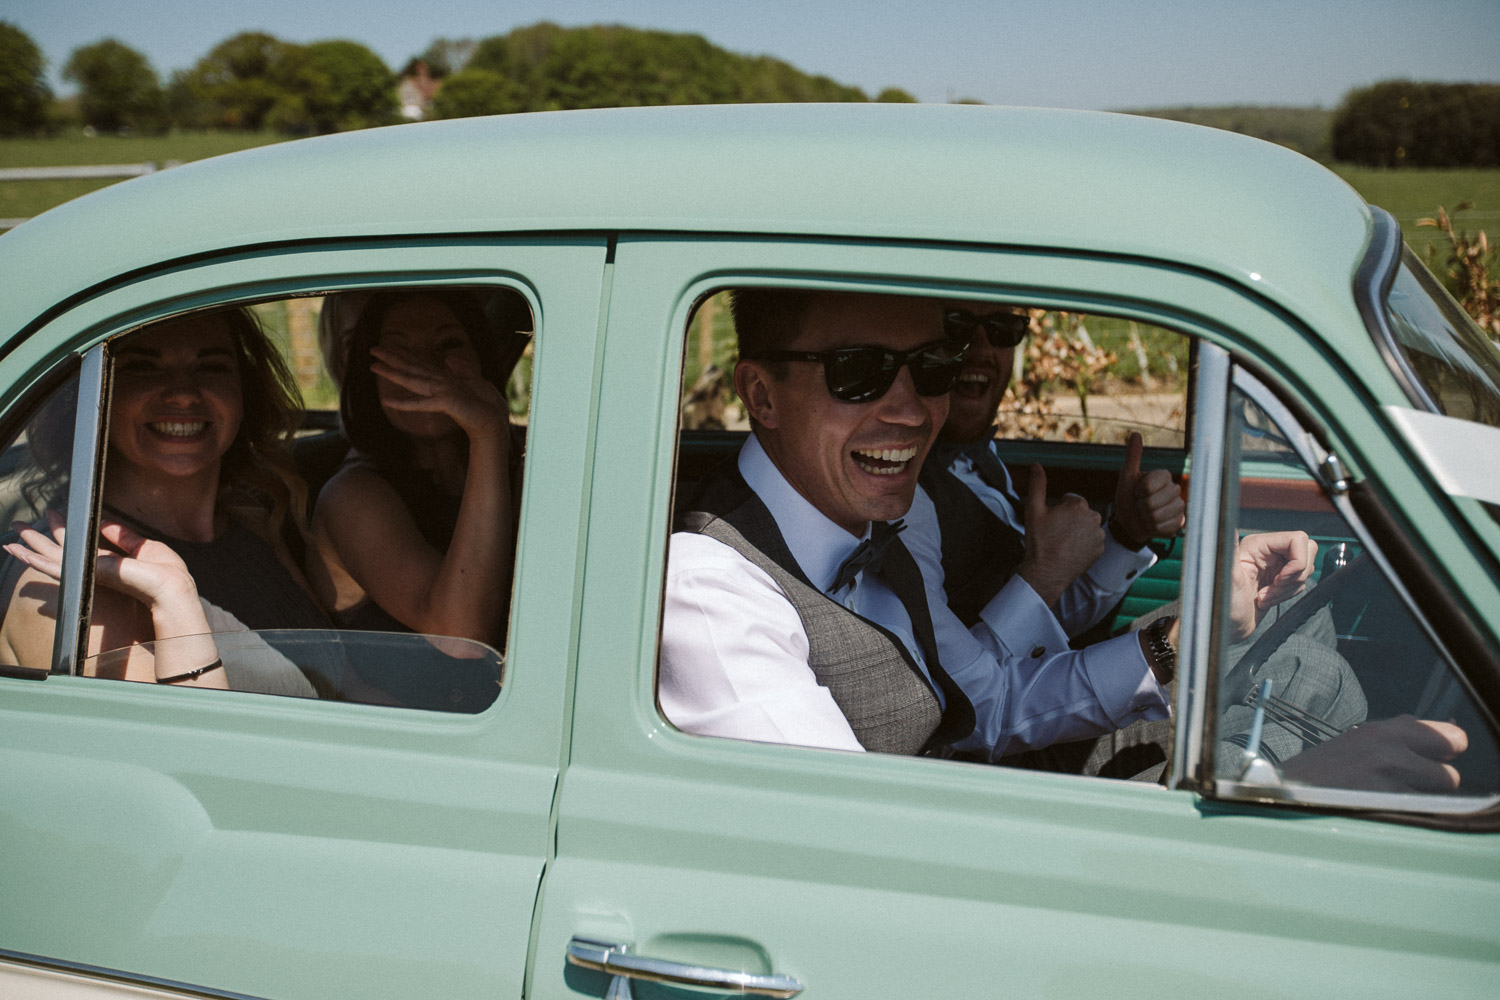 groom and friends squeezed into the vintage car laughing